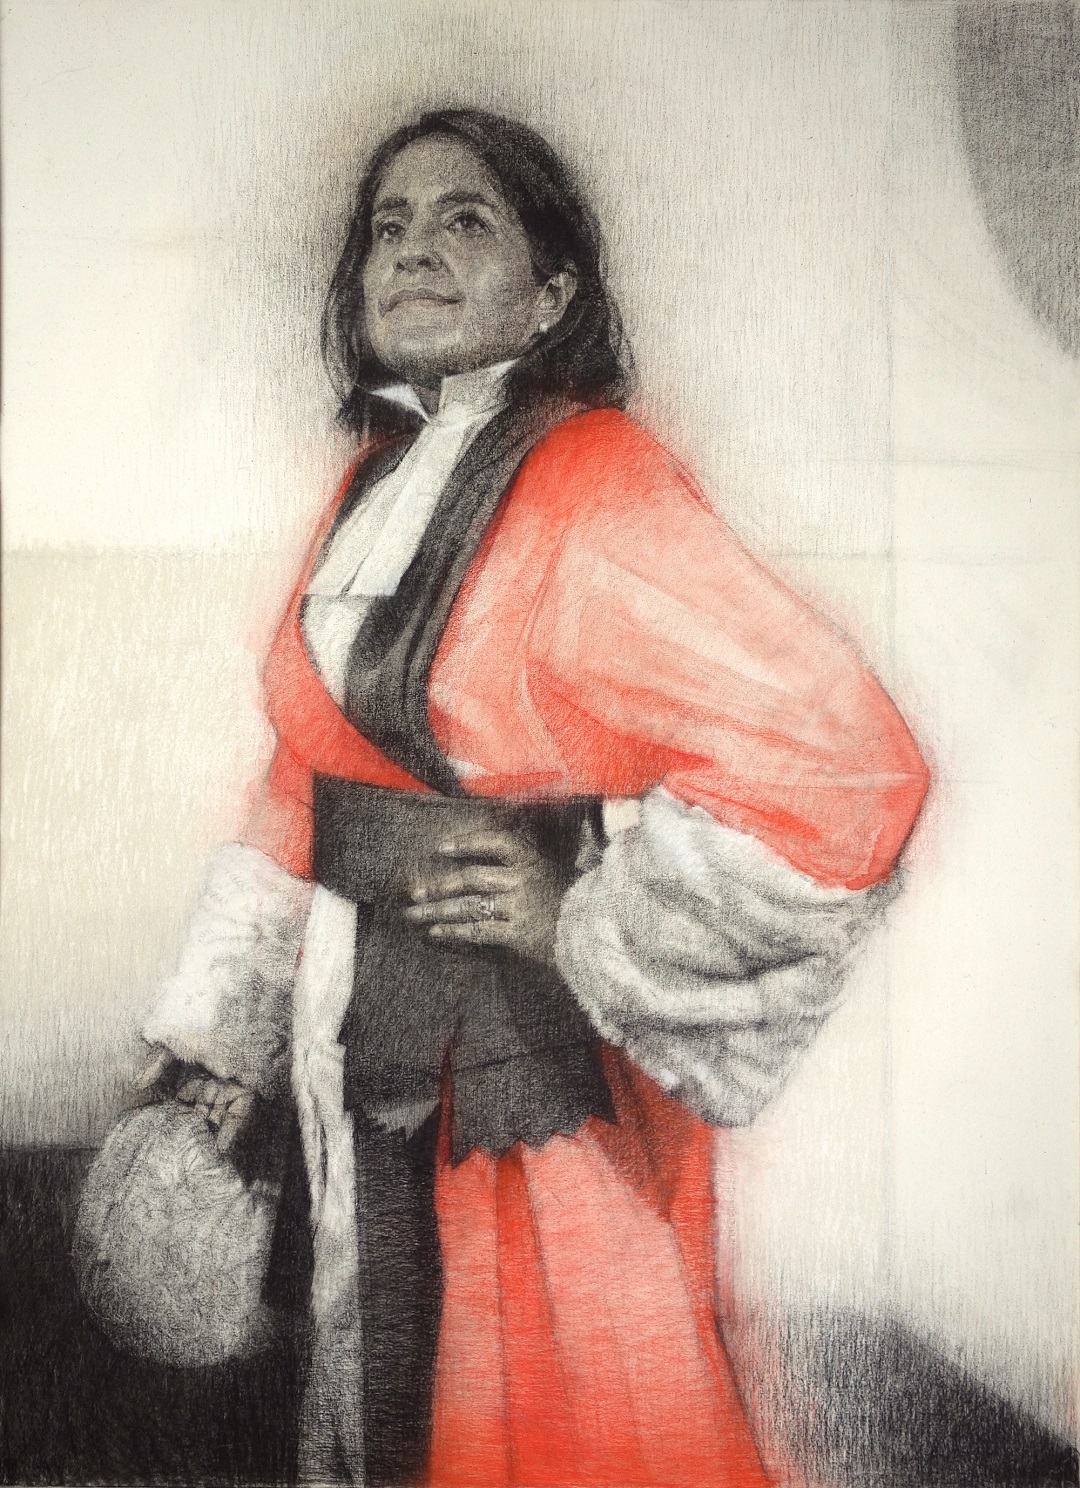 The Hon Mrs Justice Cheema-Grubb Gareth Reid Charcoal and Pastel on Canvas, 100x80cm, 2016 (Commission undertaken as part of the final for Sky Arts Portrait Artist of The Year 2017)